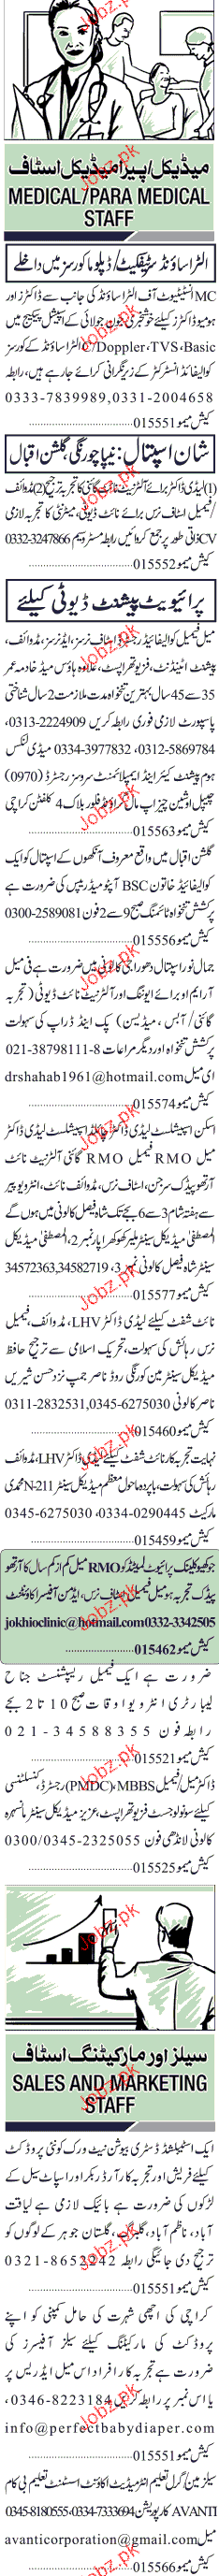 Sunday Jang Classified Doctor and Paramedical Staff Wanted 2019 Job